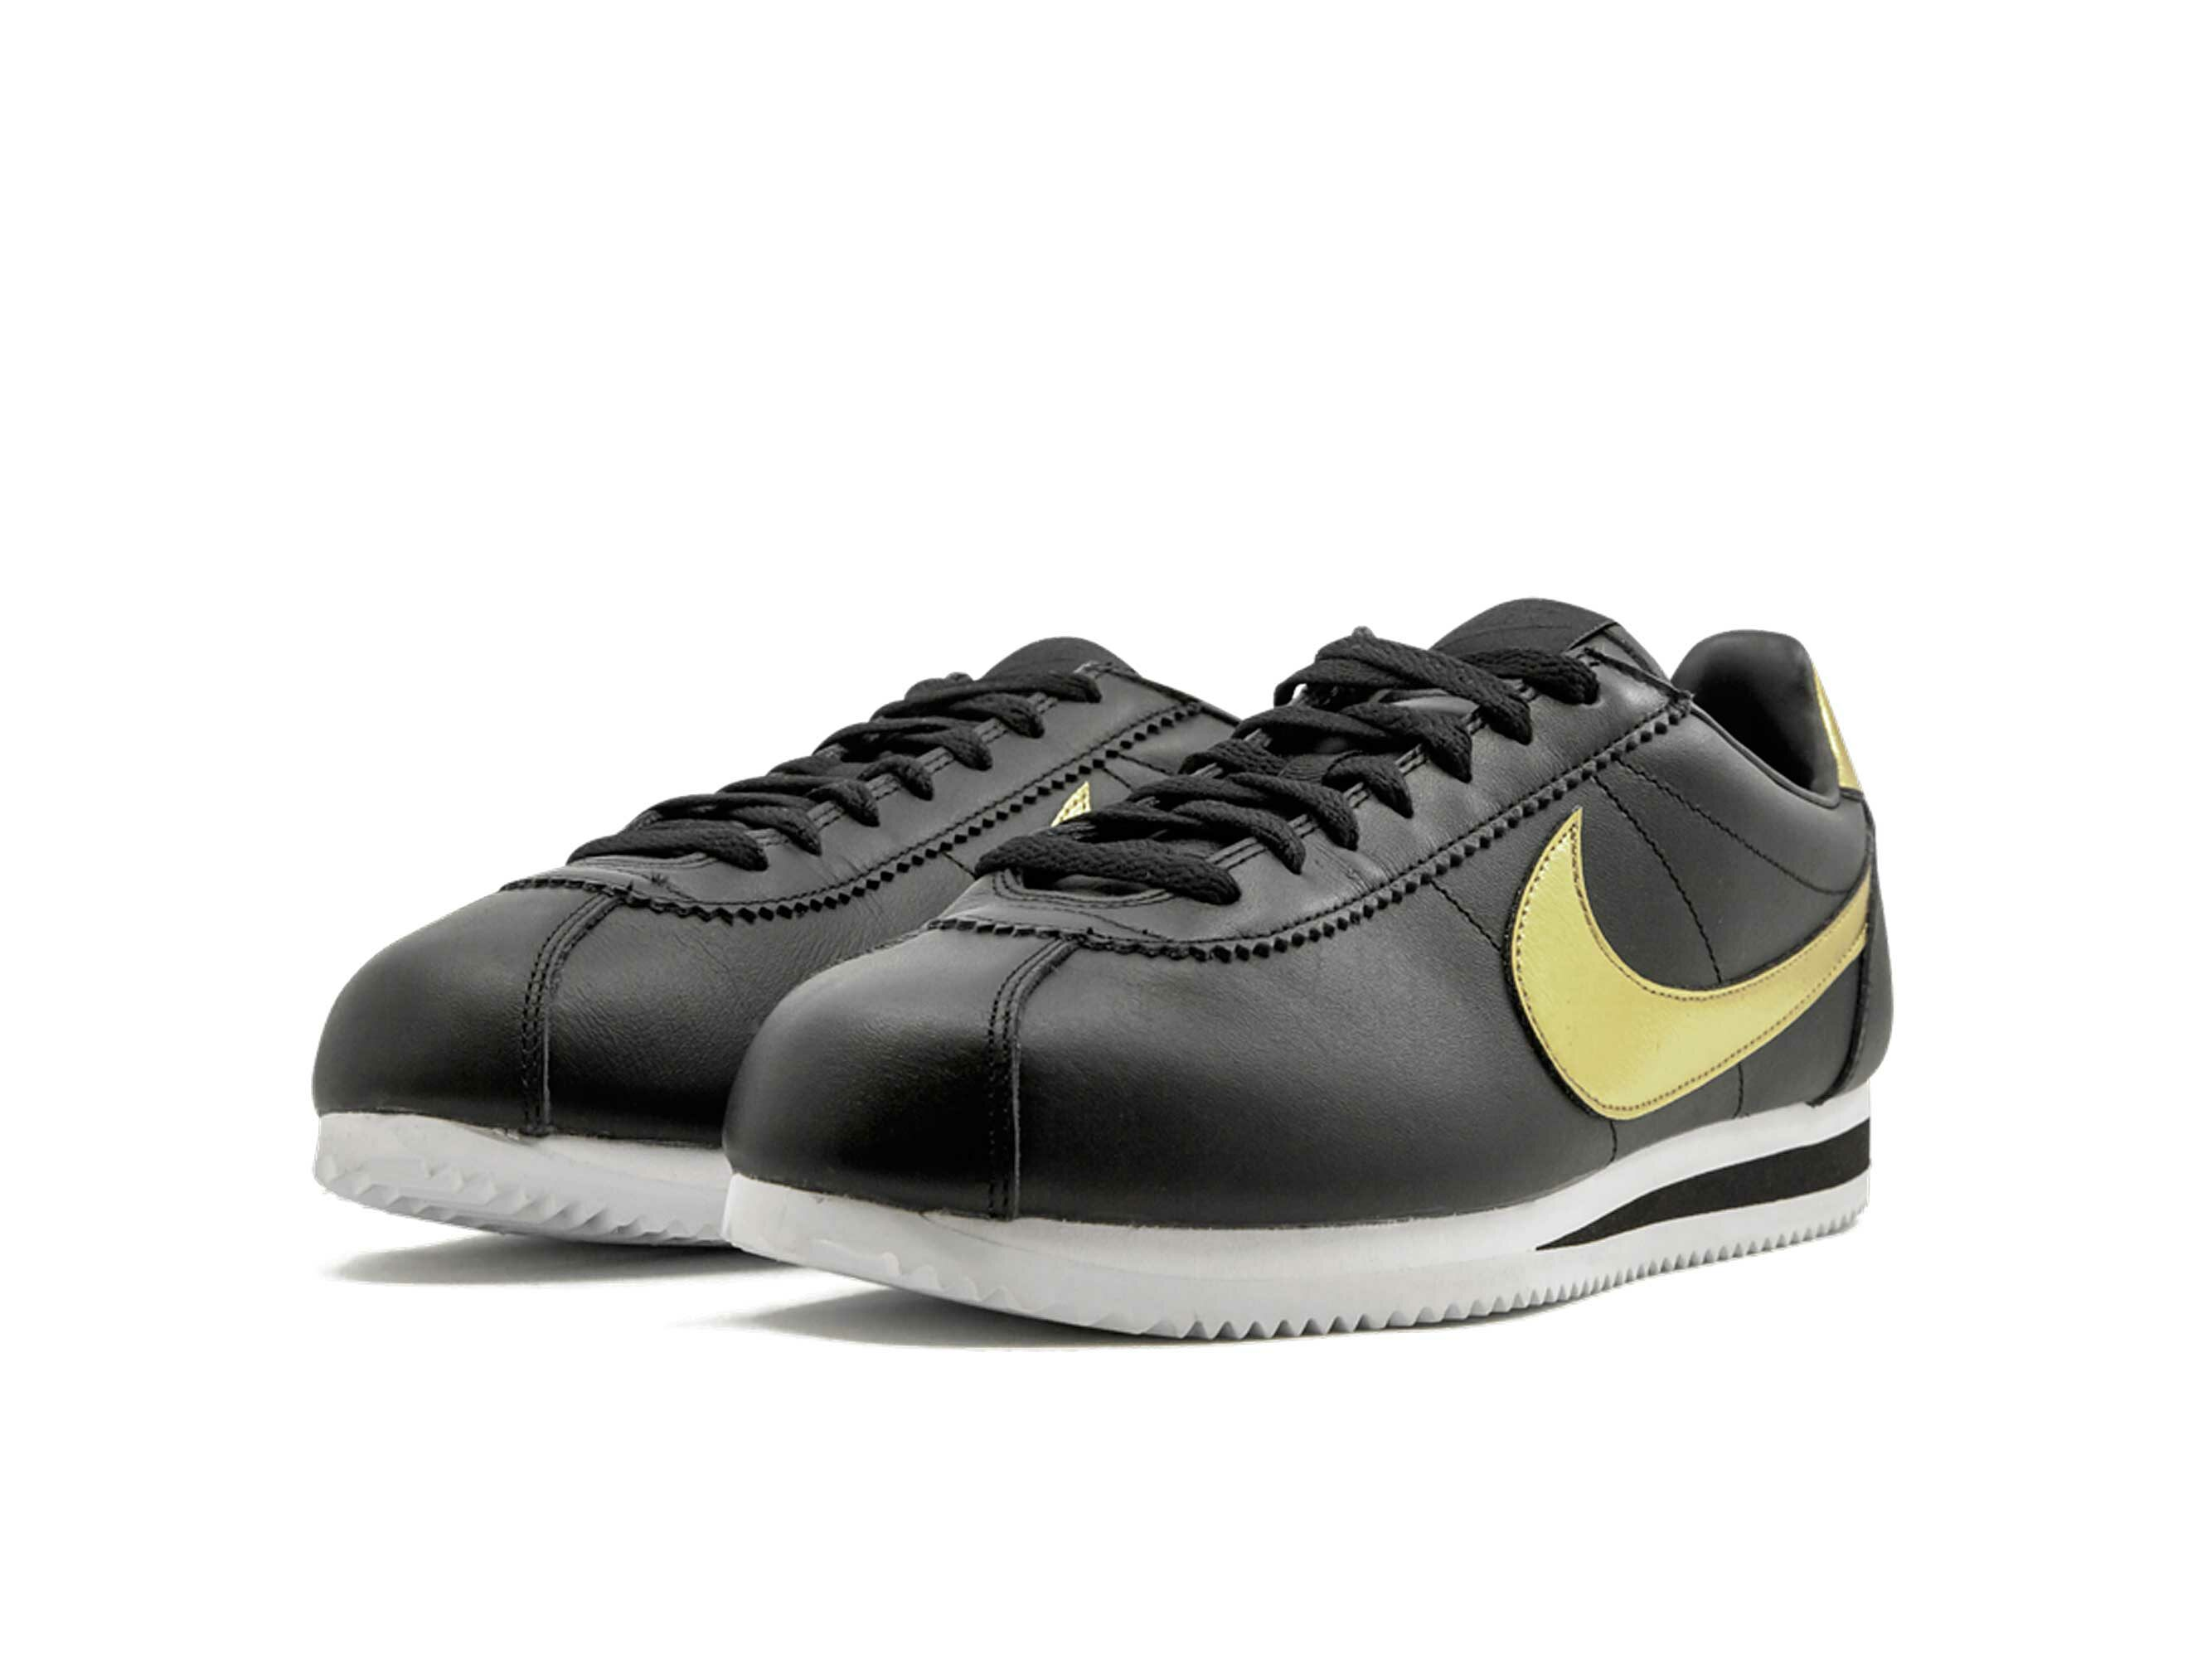 nike cortez se black gold 902801_002 купить